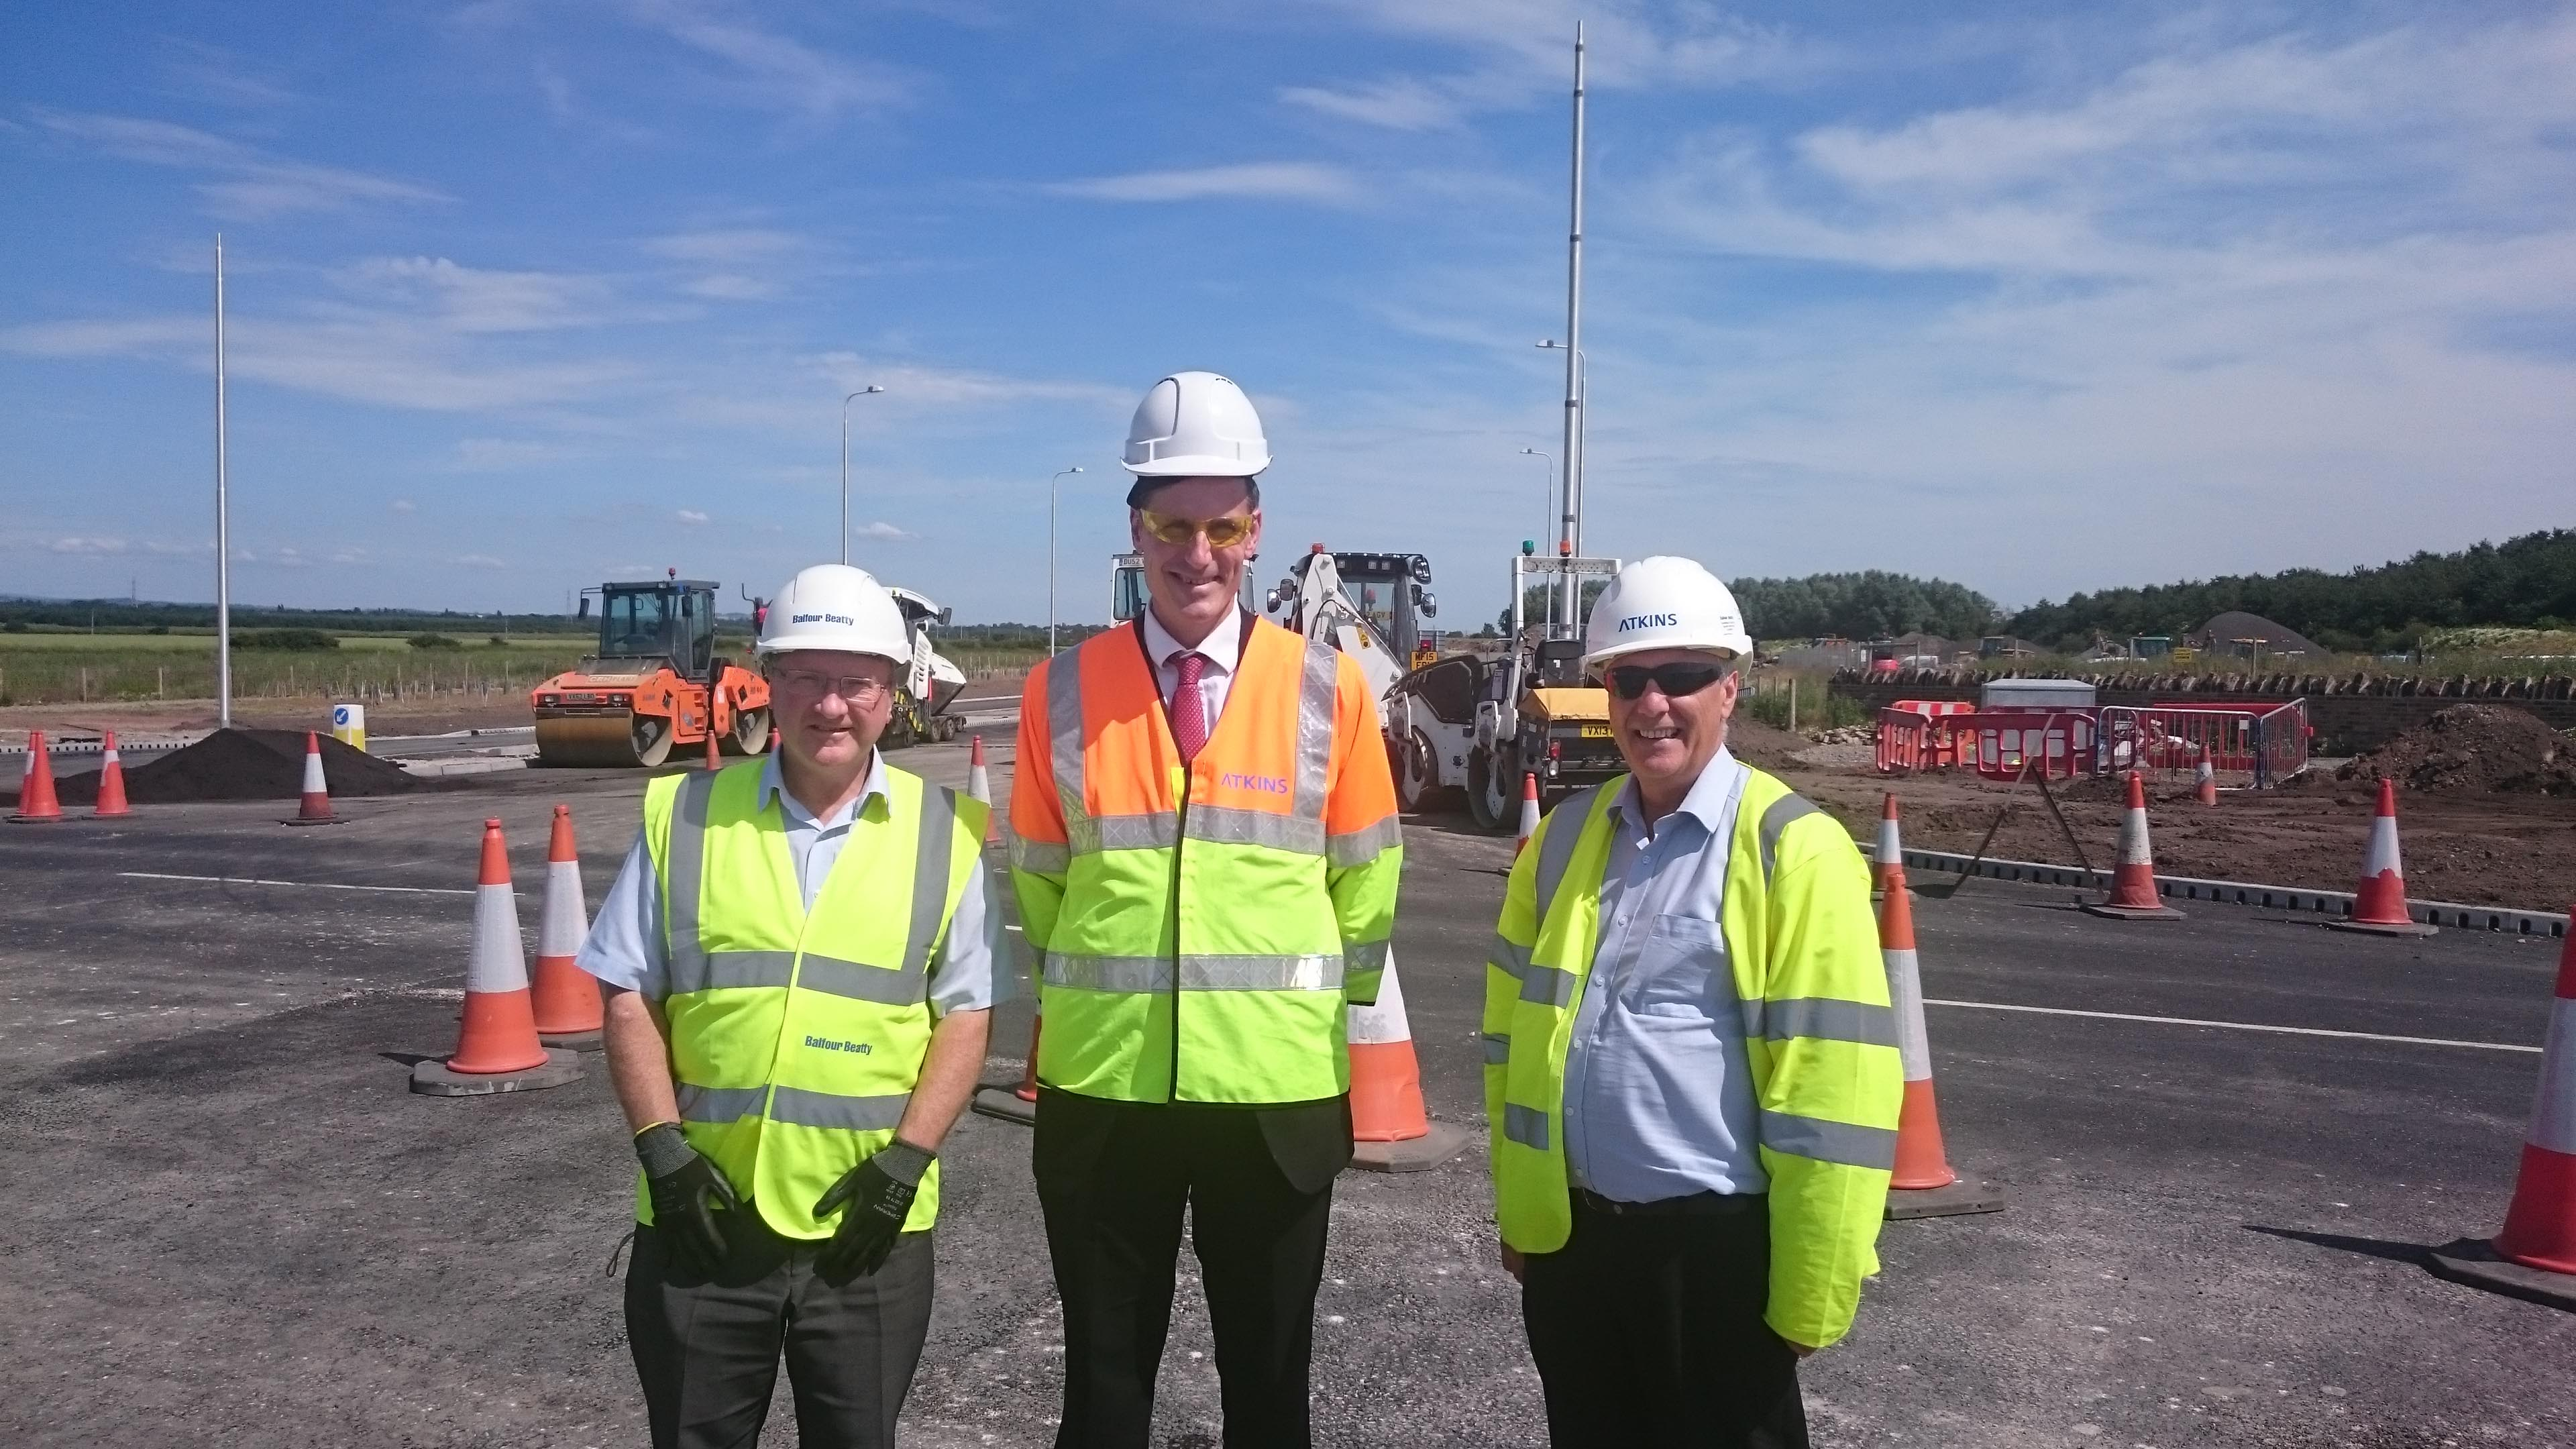 Sefton Central Labour MP Bill Esterson with Atkins site manager Gordon Cowan and Balfour Beatty project manager Andy Leech.